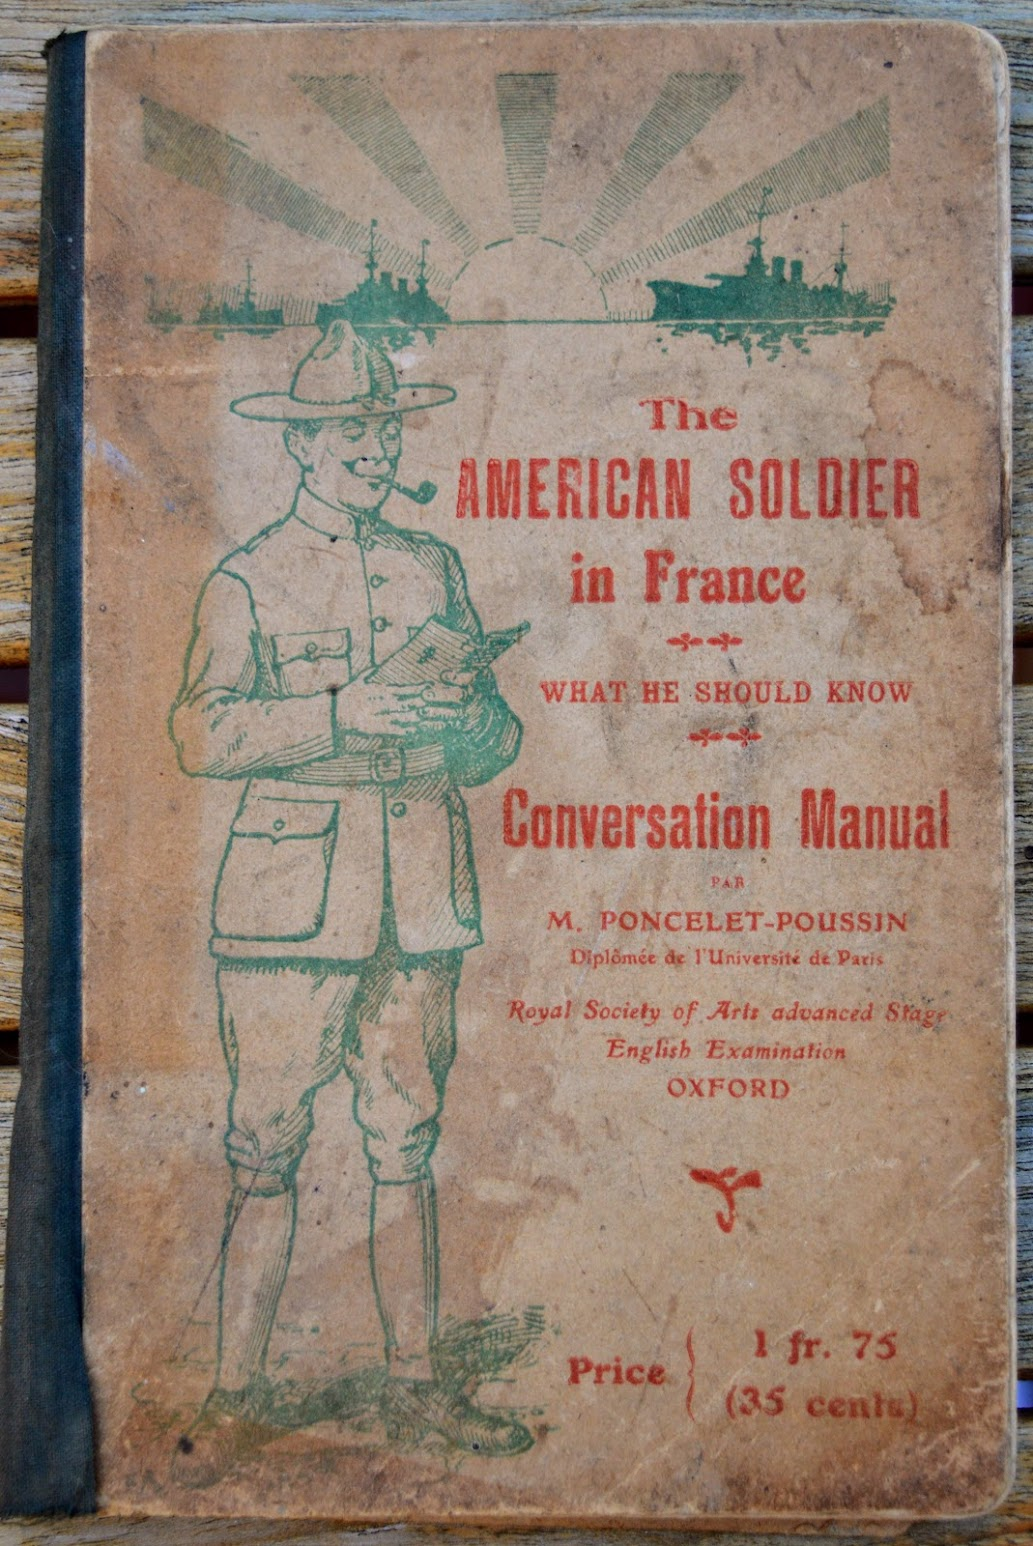 The American Soldier in France - Konversationsbuch - 1918